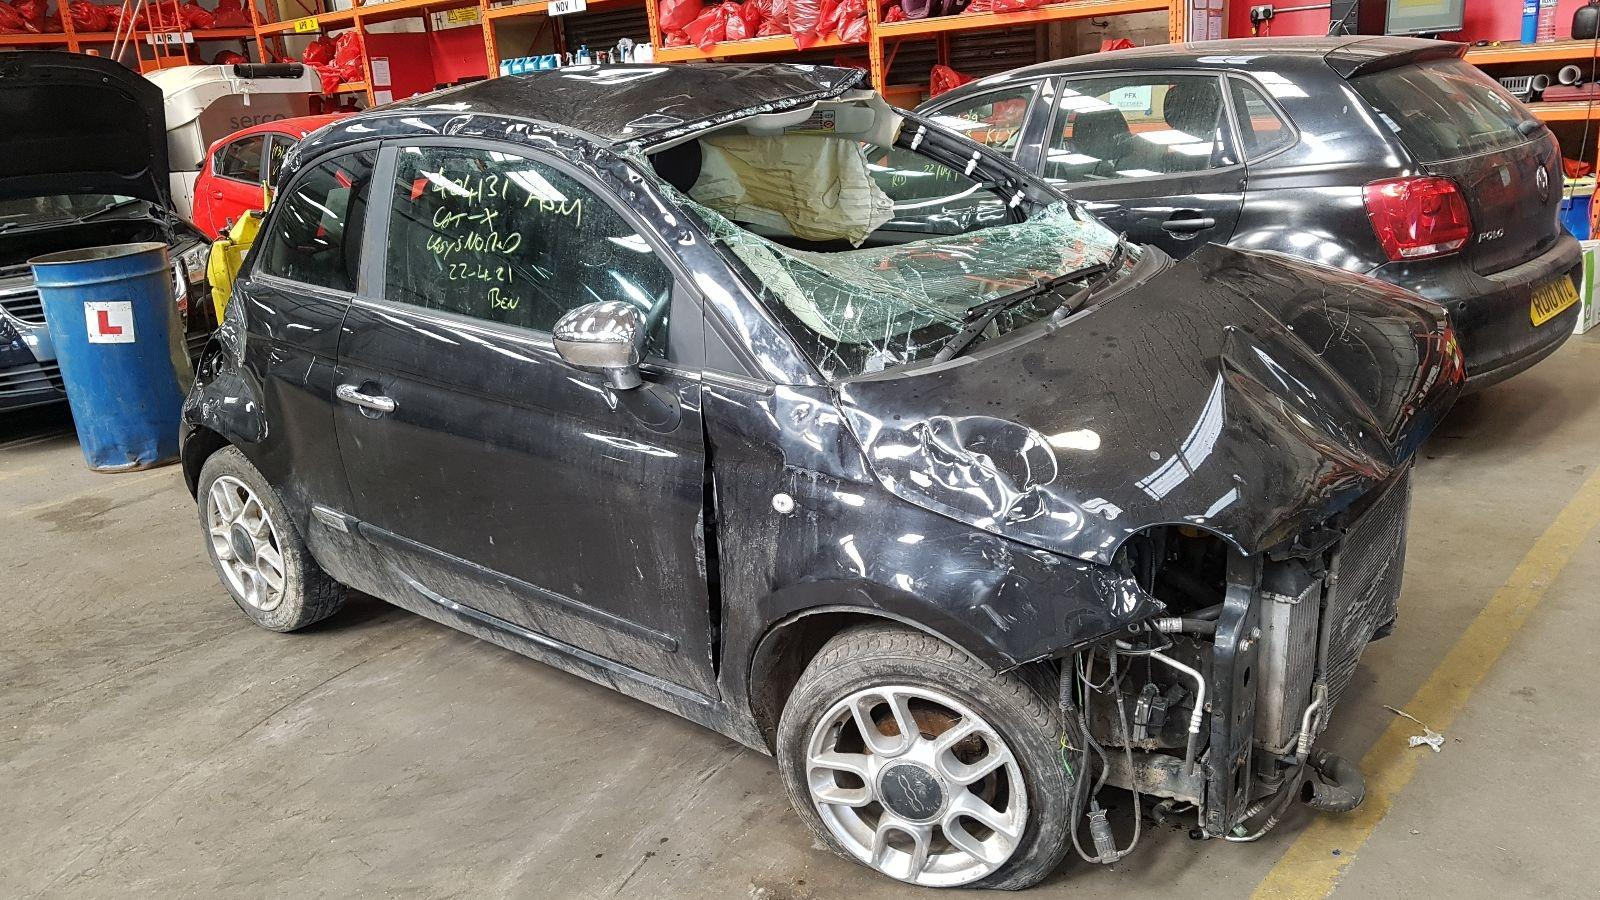 Image for a 2009 Fiat 500 1.2 Diesel 169A1.000 Engine